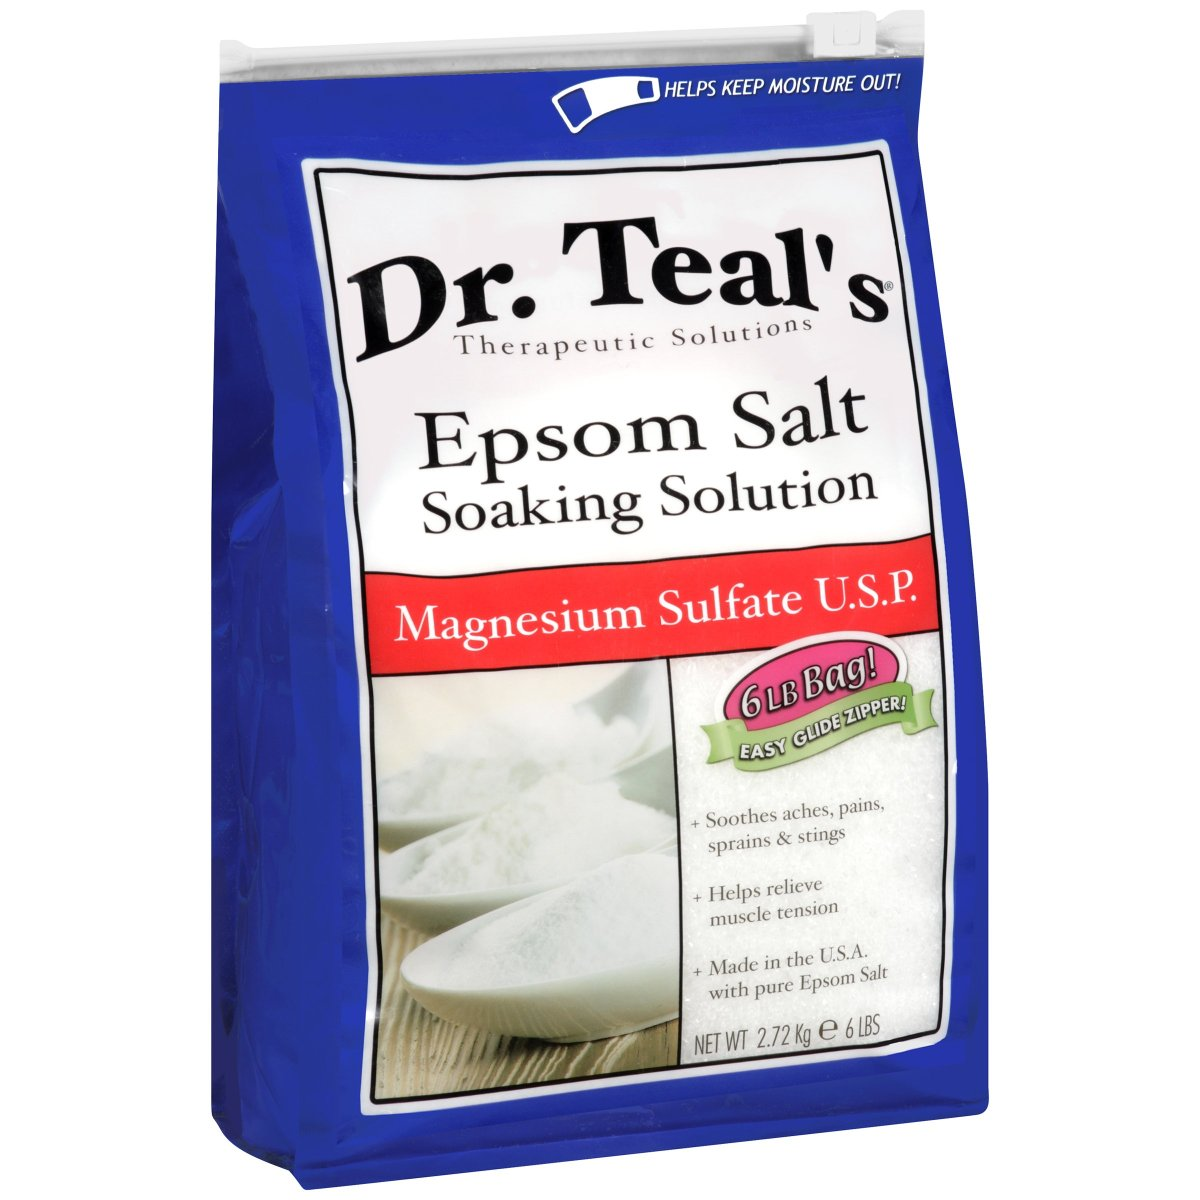 Dr. Teal's Epsom Salt Doesn't Relieve Muscle Soreness, Class Action Says